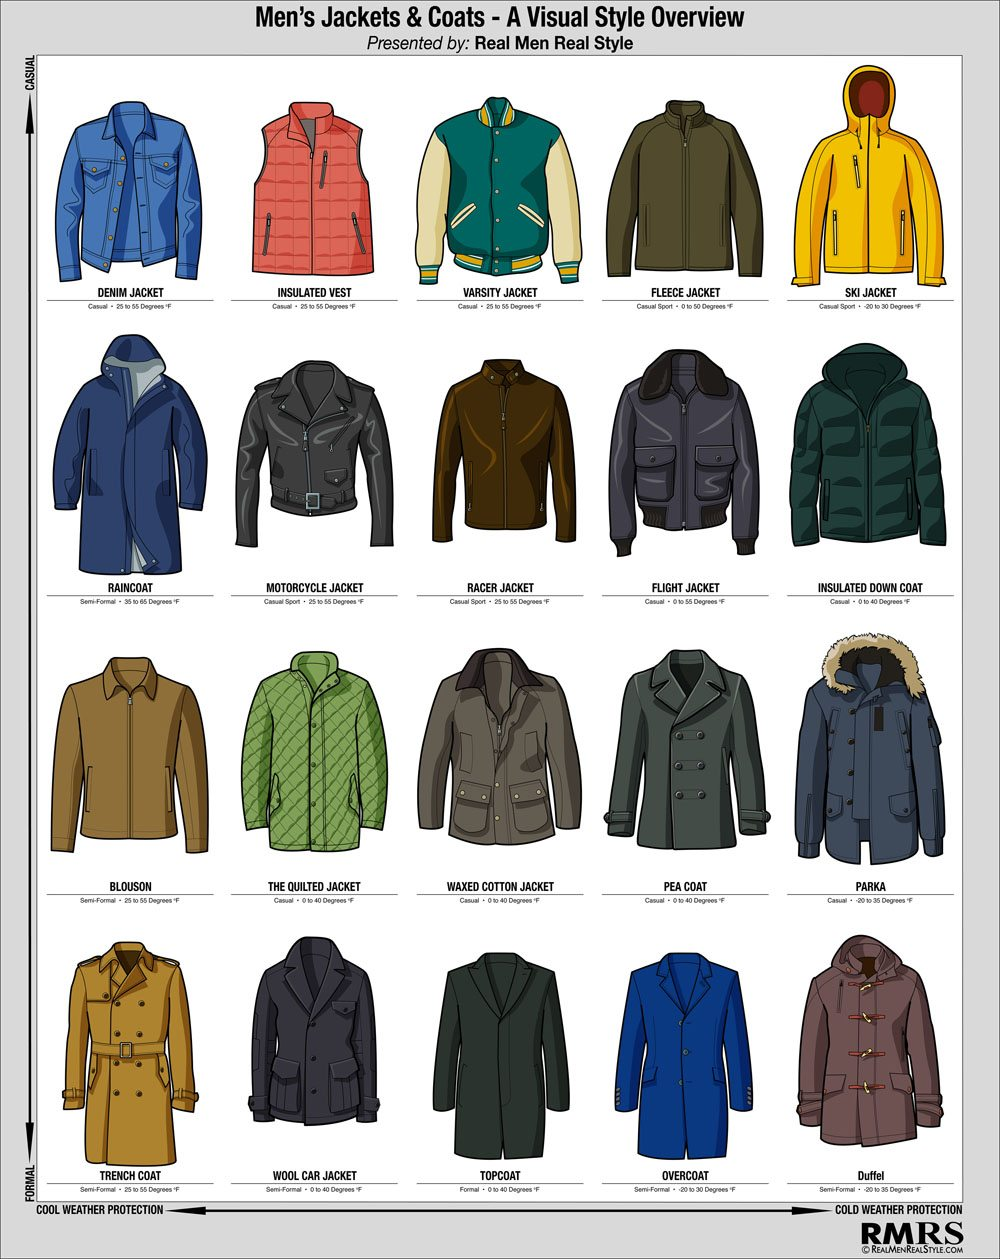 men u2019s winter jacket infographic  u2013 visual style guide to